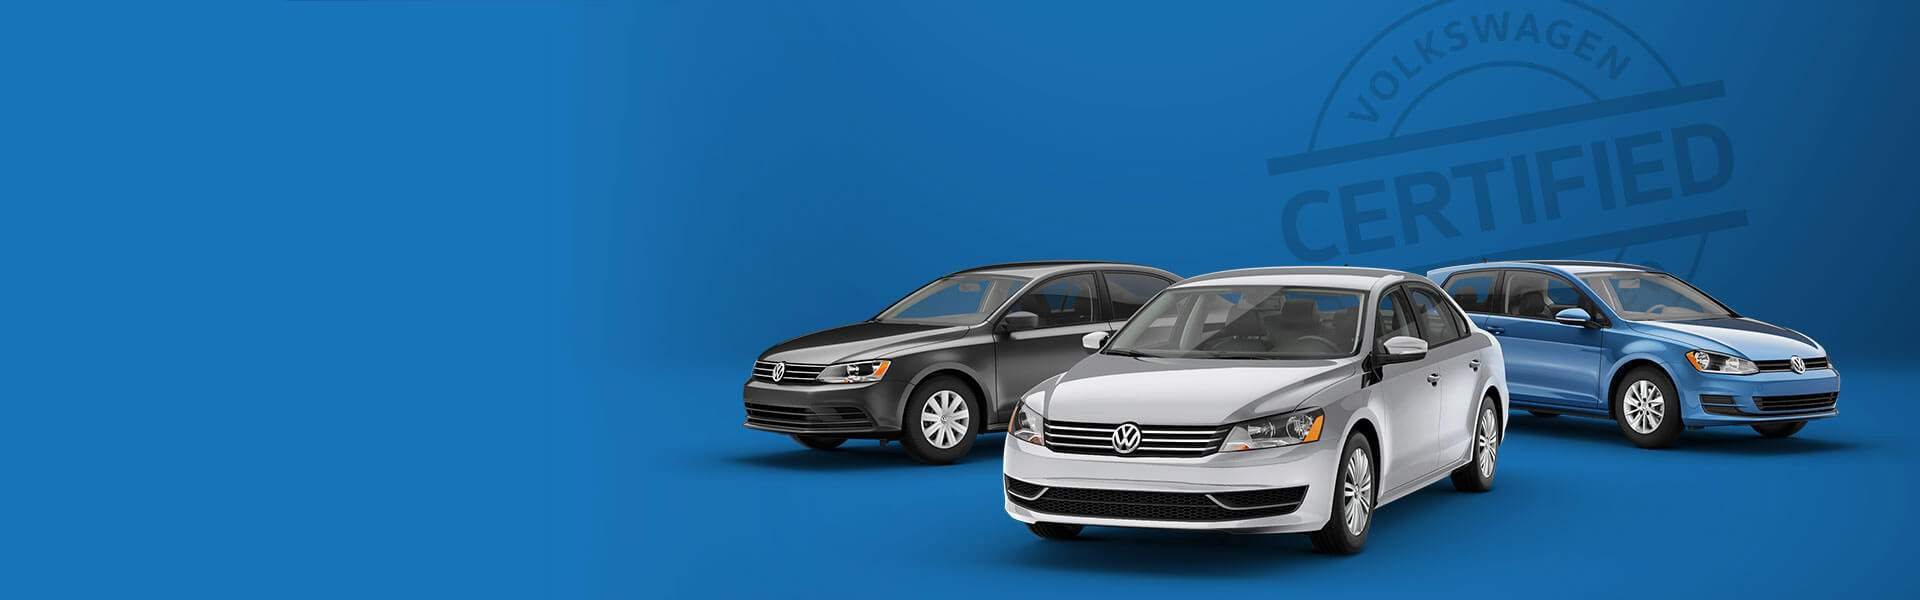 Volkswagen Certified Pre-Owned in South Mississippi, MS